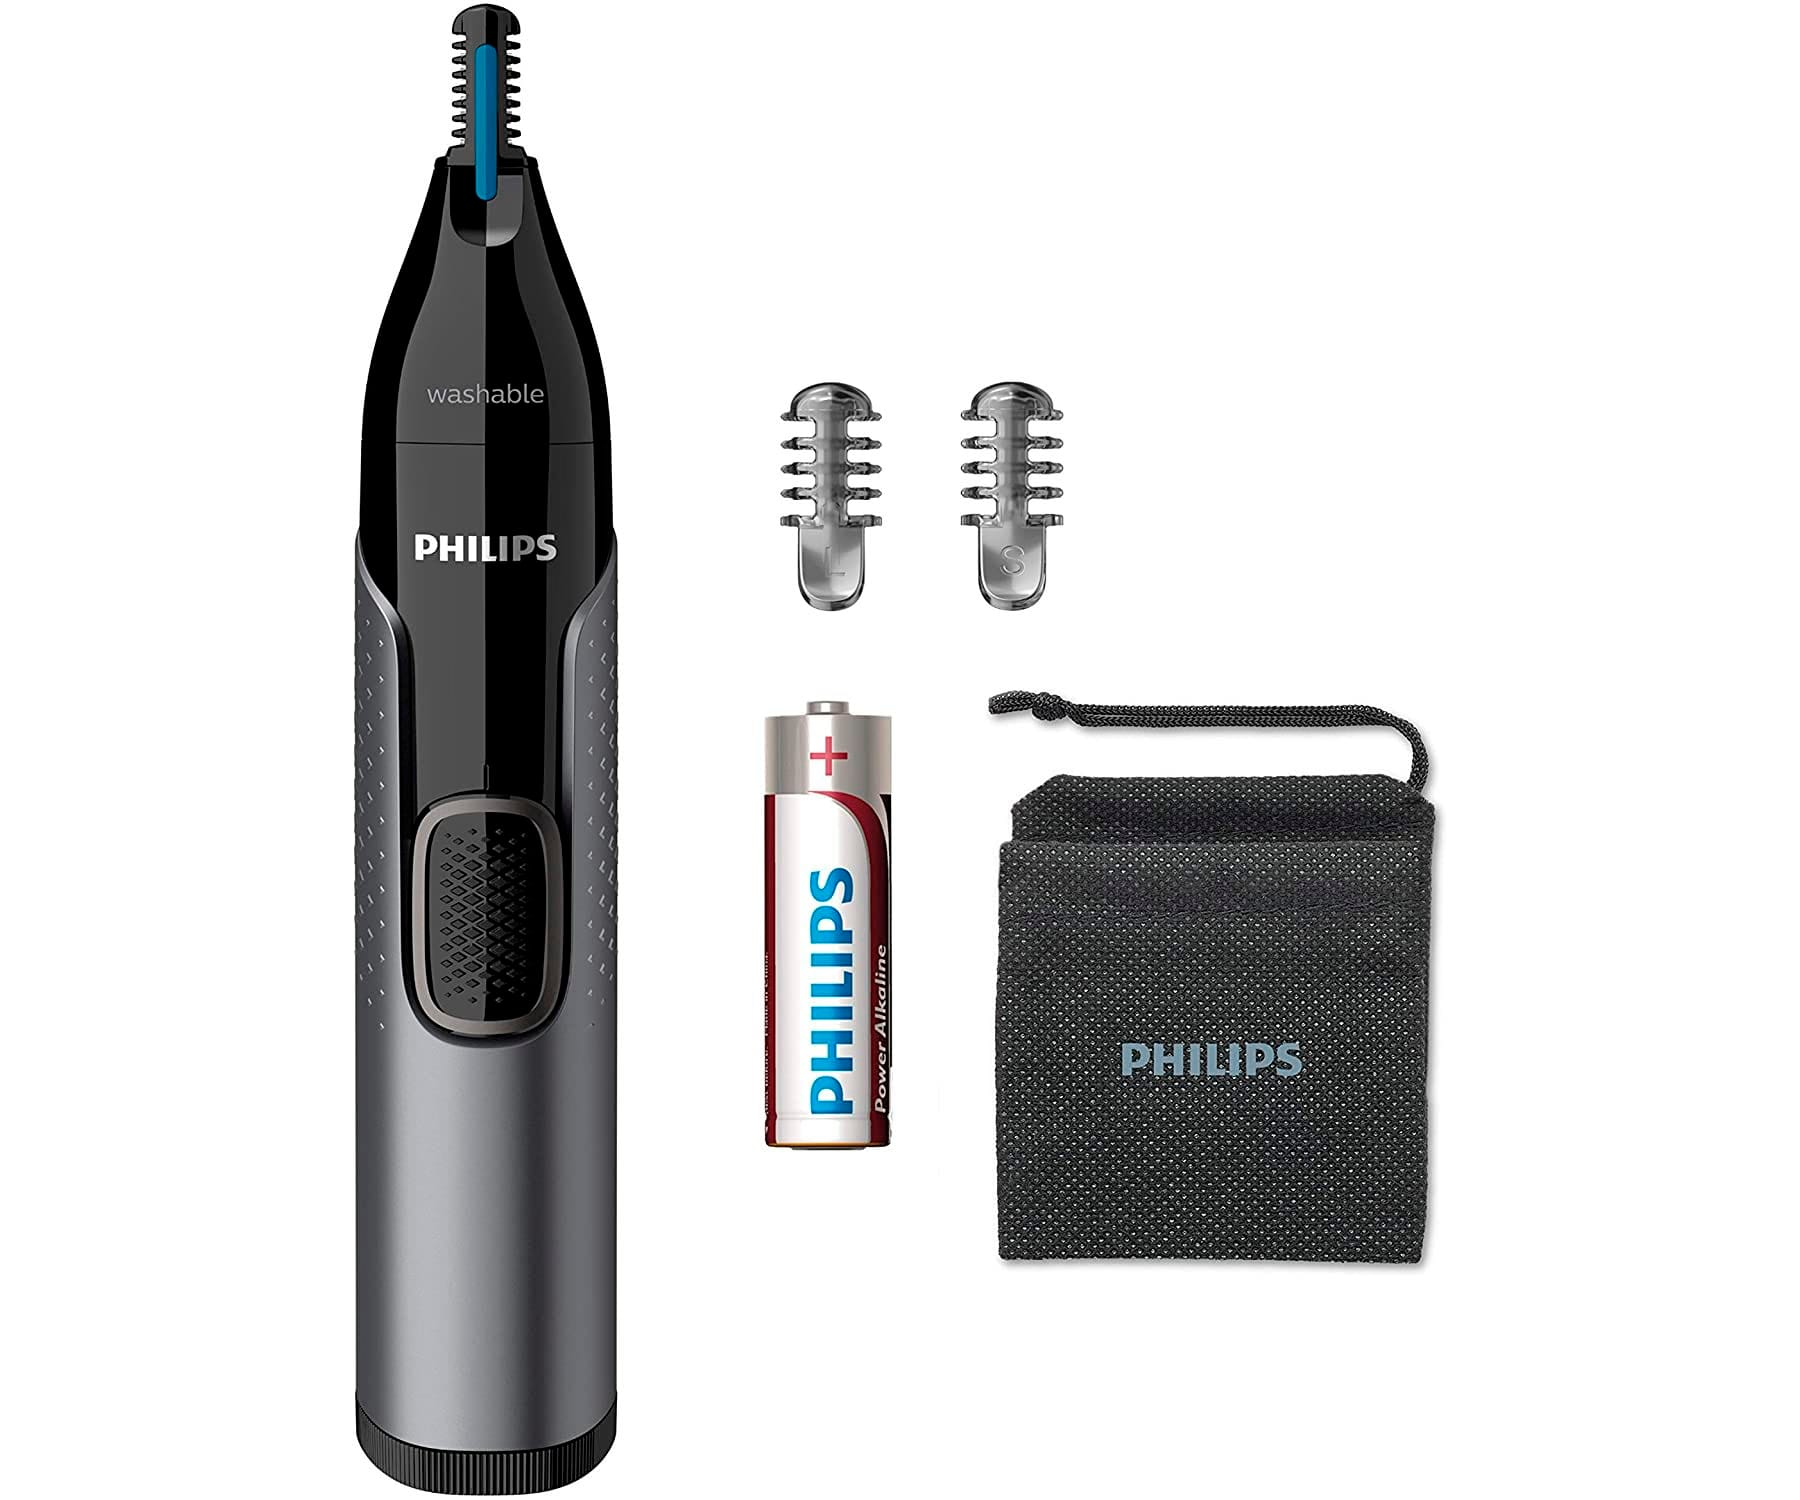 PHILIPS NT3650/16 RECORTADORA DE NARIZ ELÉCTRICA NOSE TRIMMER SERIES 3000